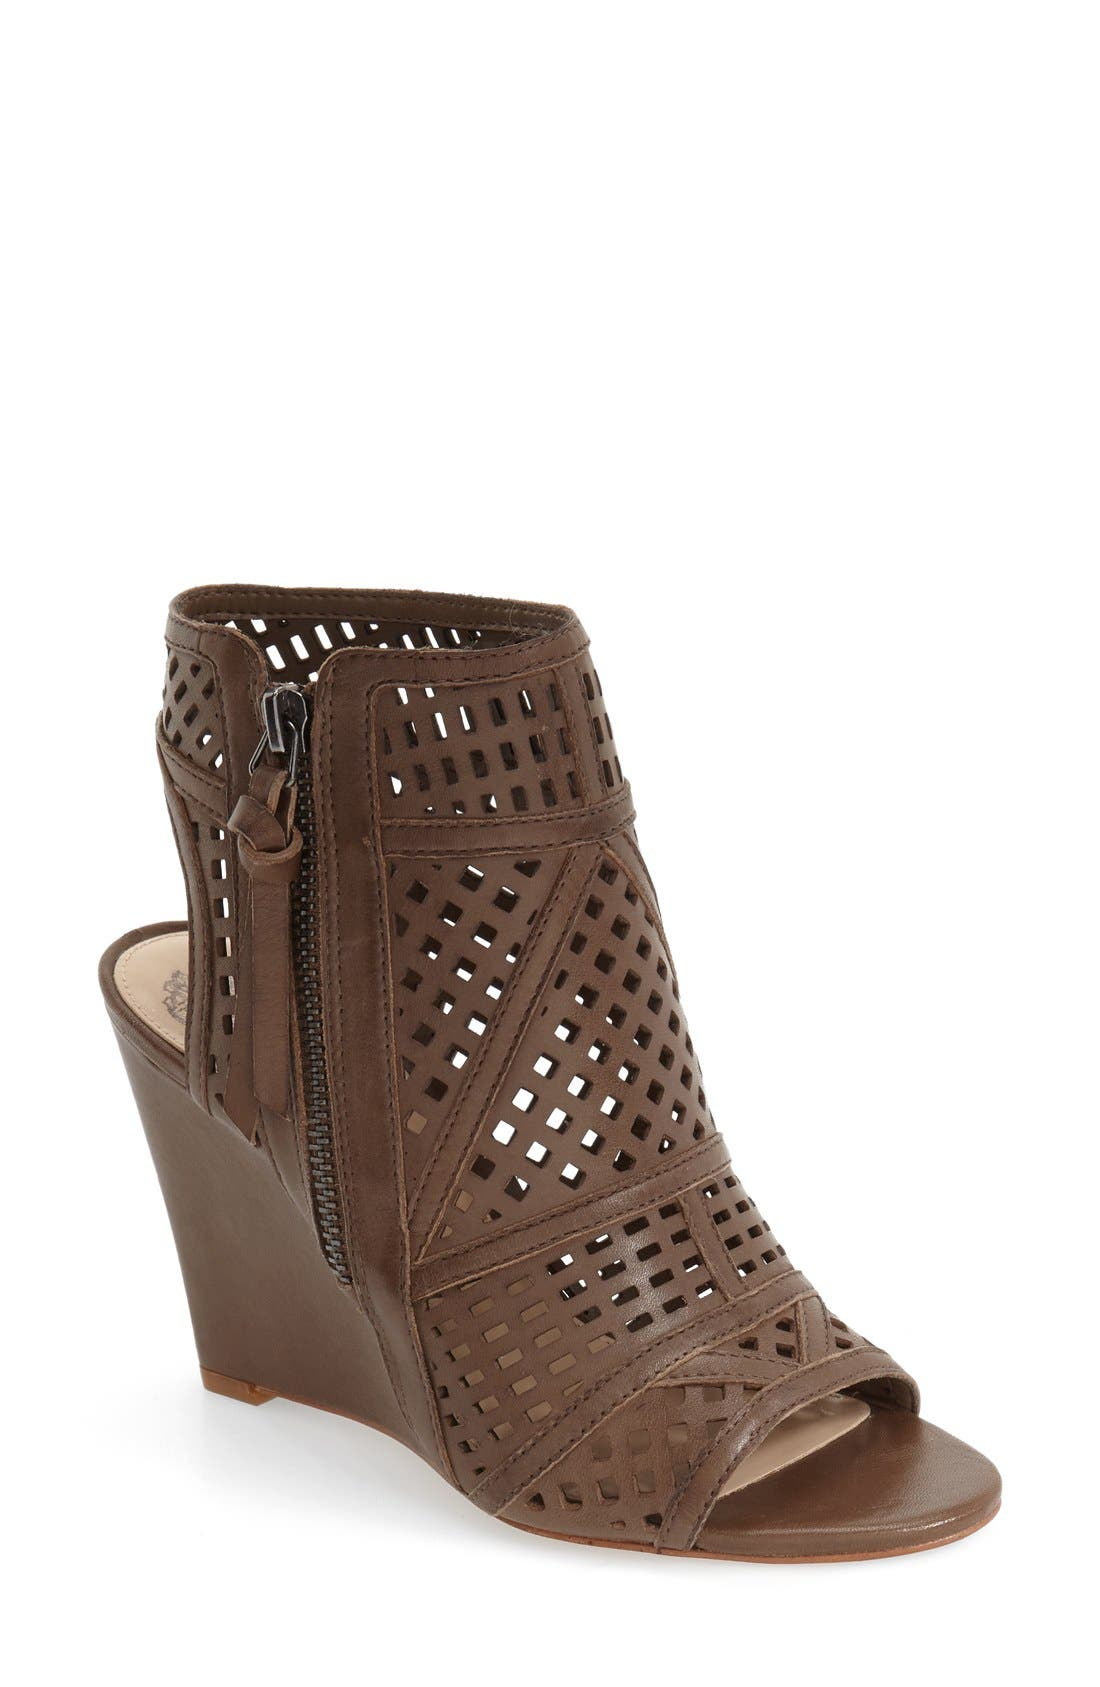 Alternate Image 1 Selected - Vince Camuto 'Xabrina' Perforated Wedge Sandal (Women)